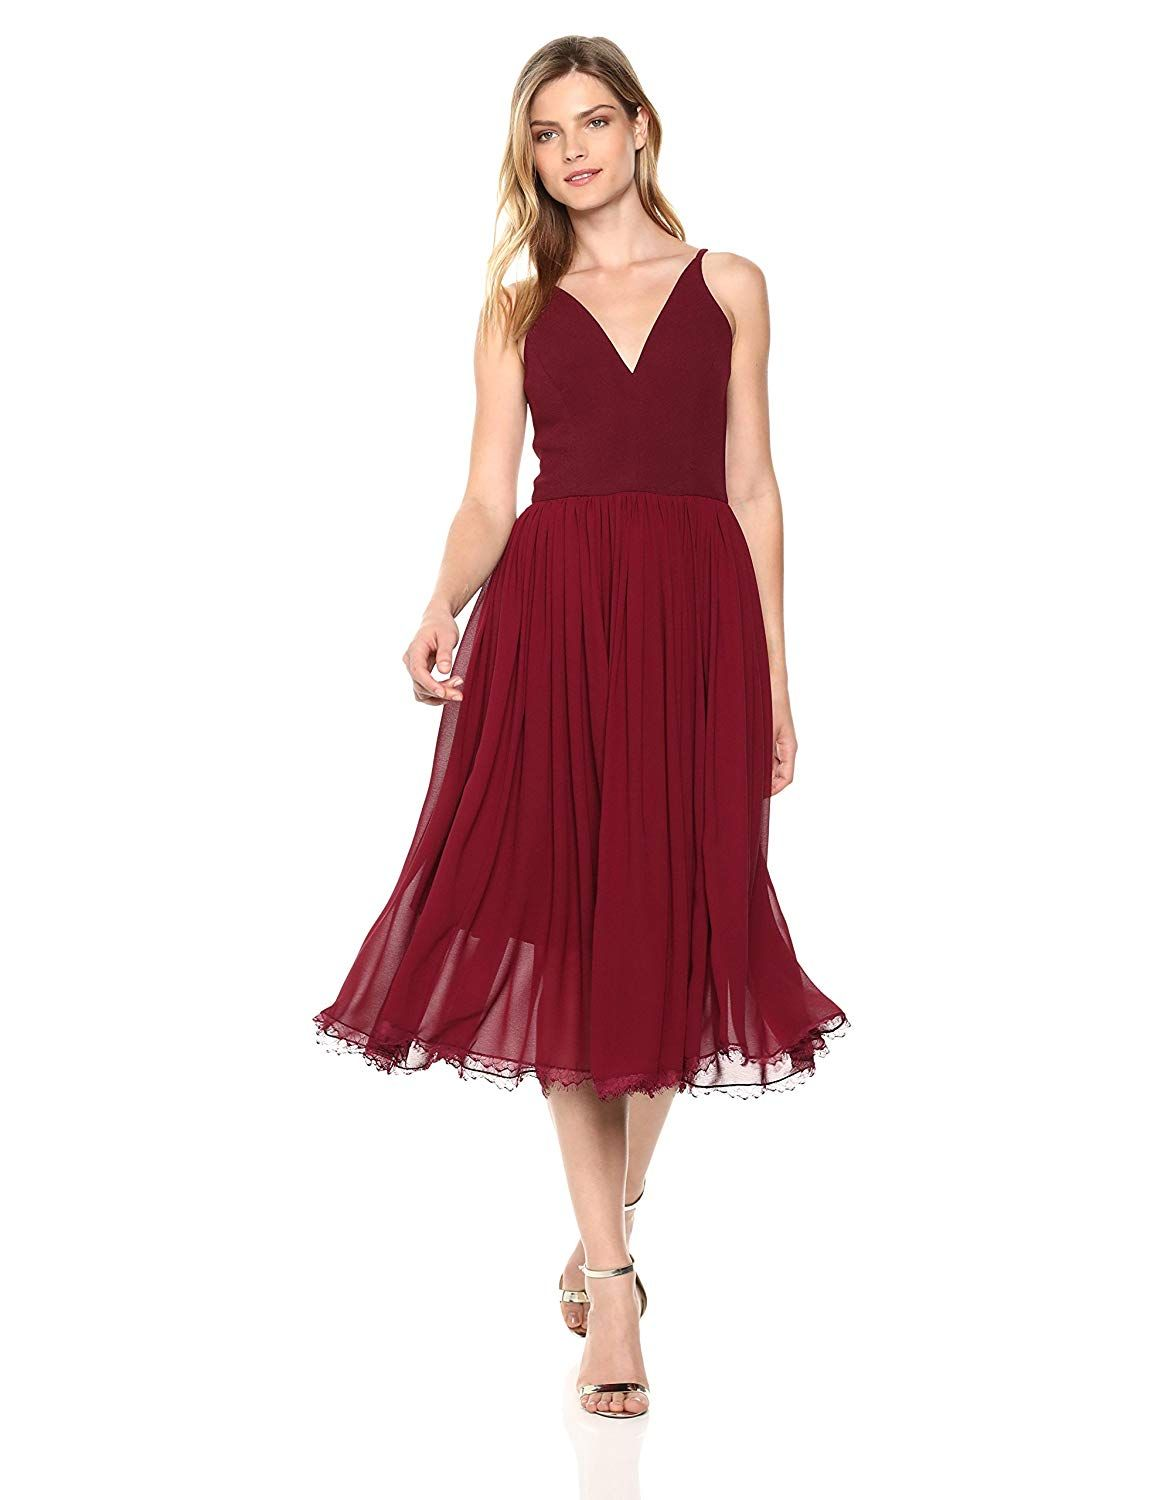 859146a47195 Dress the Population Women's Alicia Plunging Mix Media Sleeveless Fit and  Flare Midi Dress at Amazon Women's Clothing store: